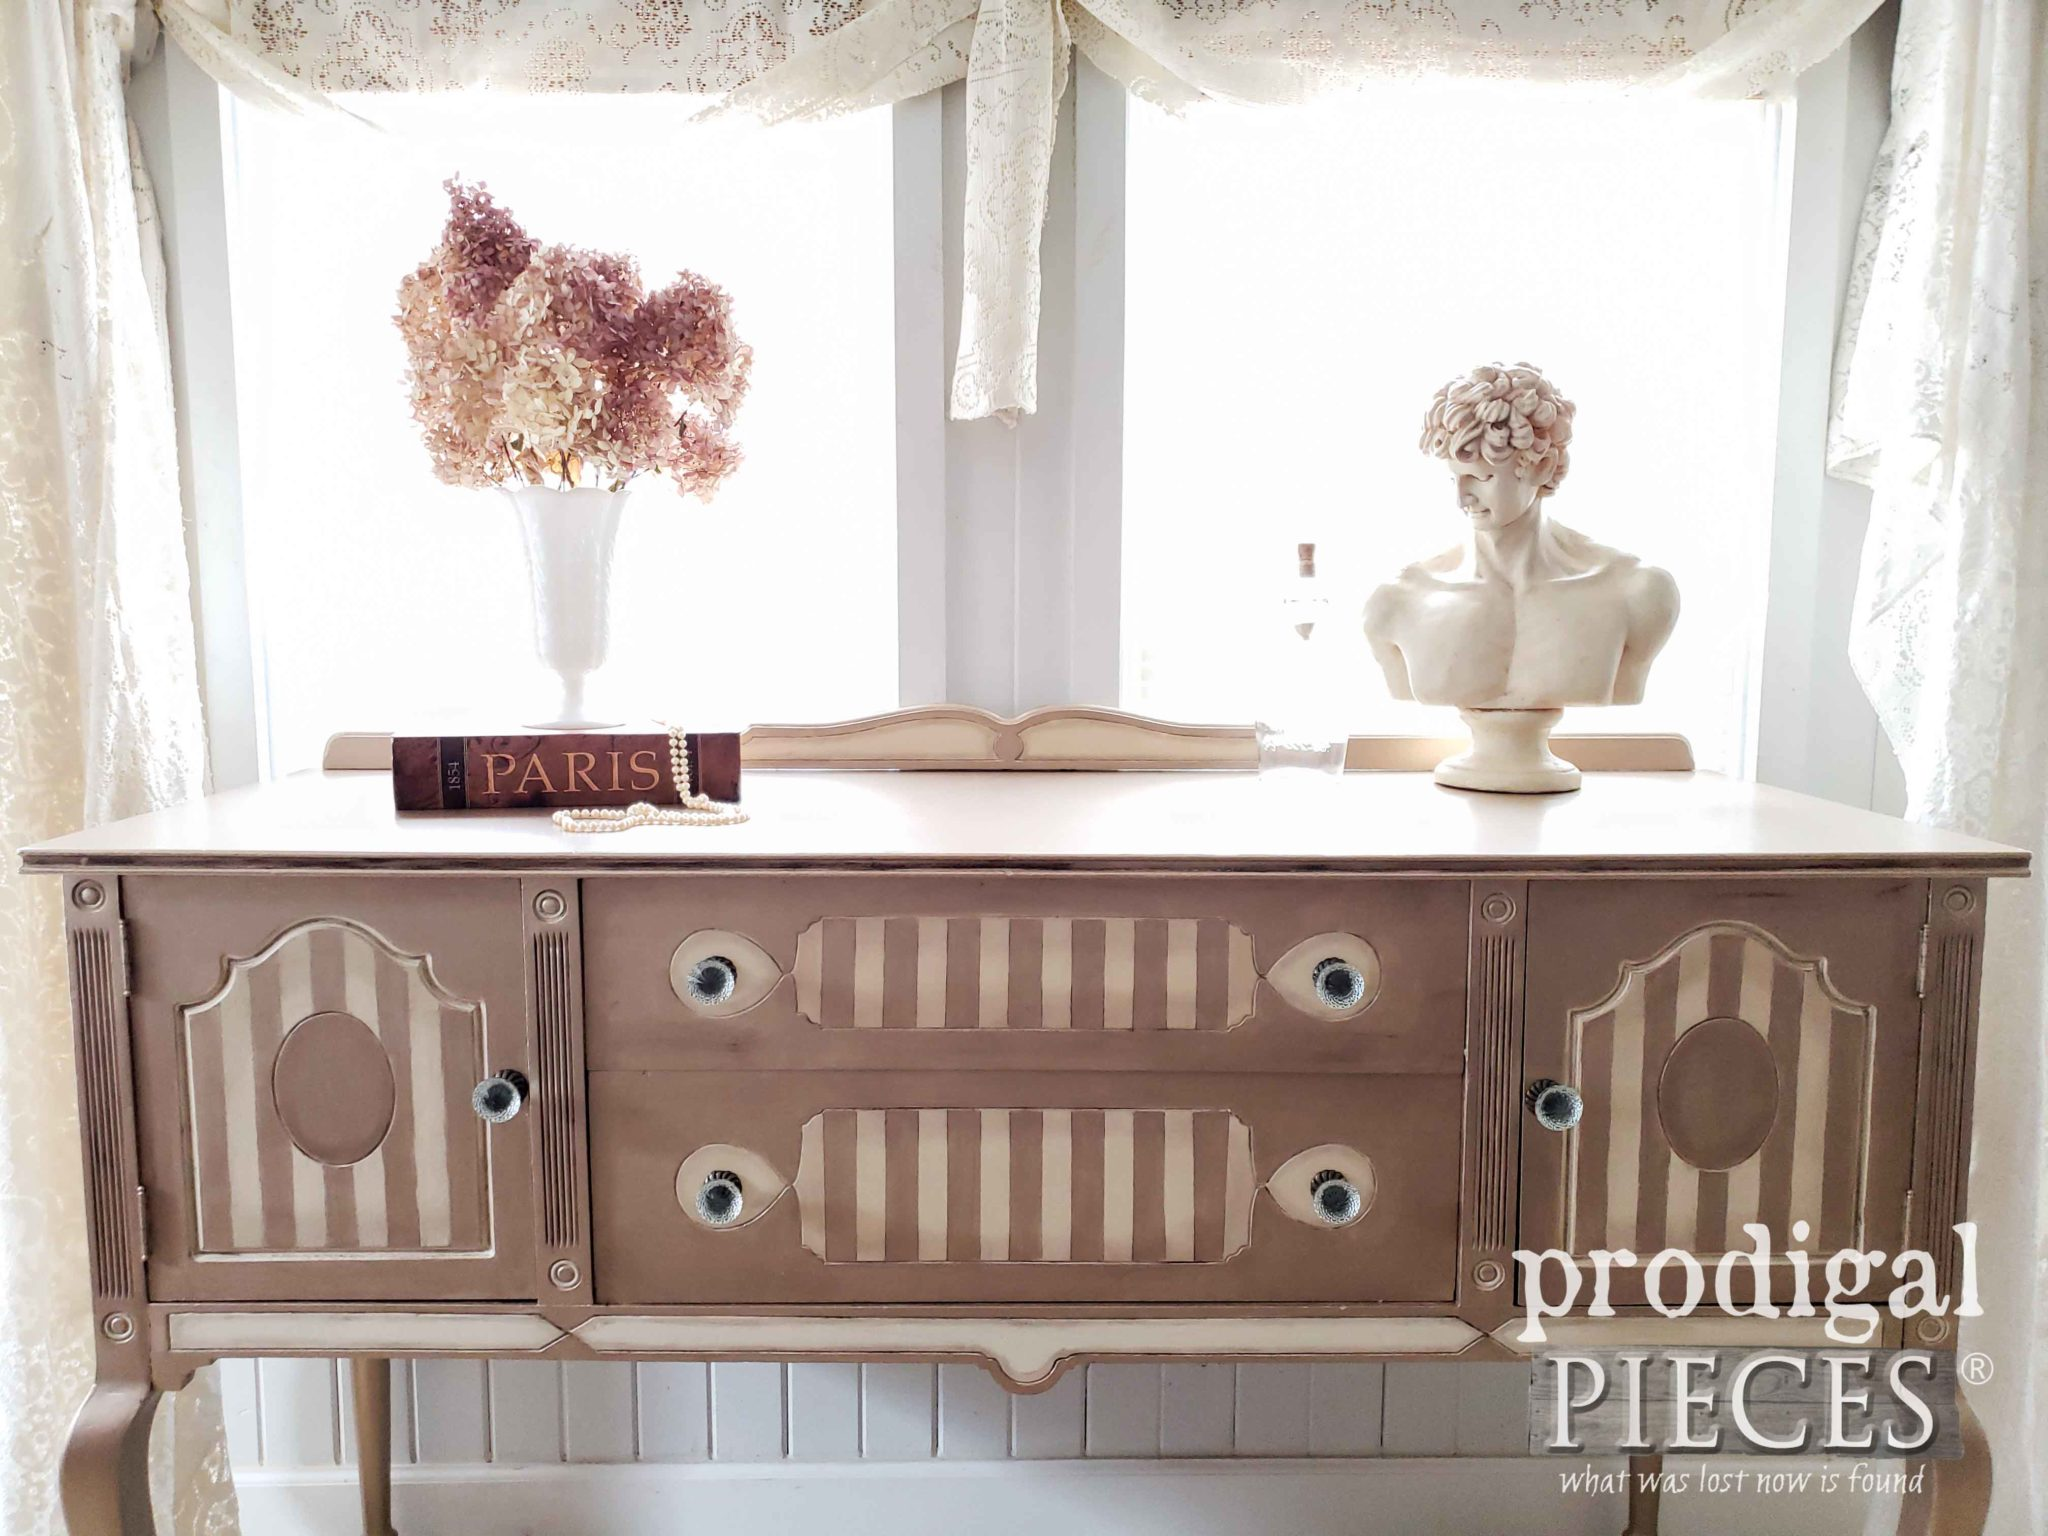 French Country Antique Buffet in Metallic Warm Silver by Larissa of Prodigal Pieces | prodigalpieces.com #prodigalpieces #diy #home #furniture #french #homedecor